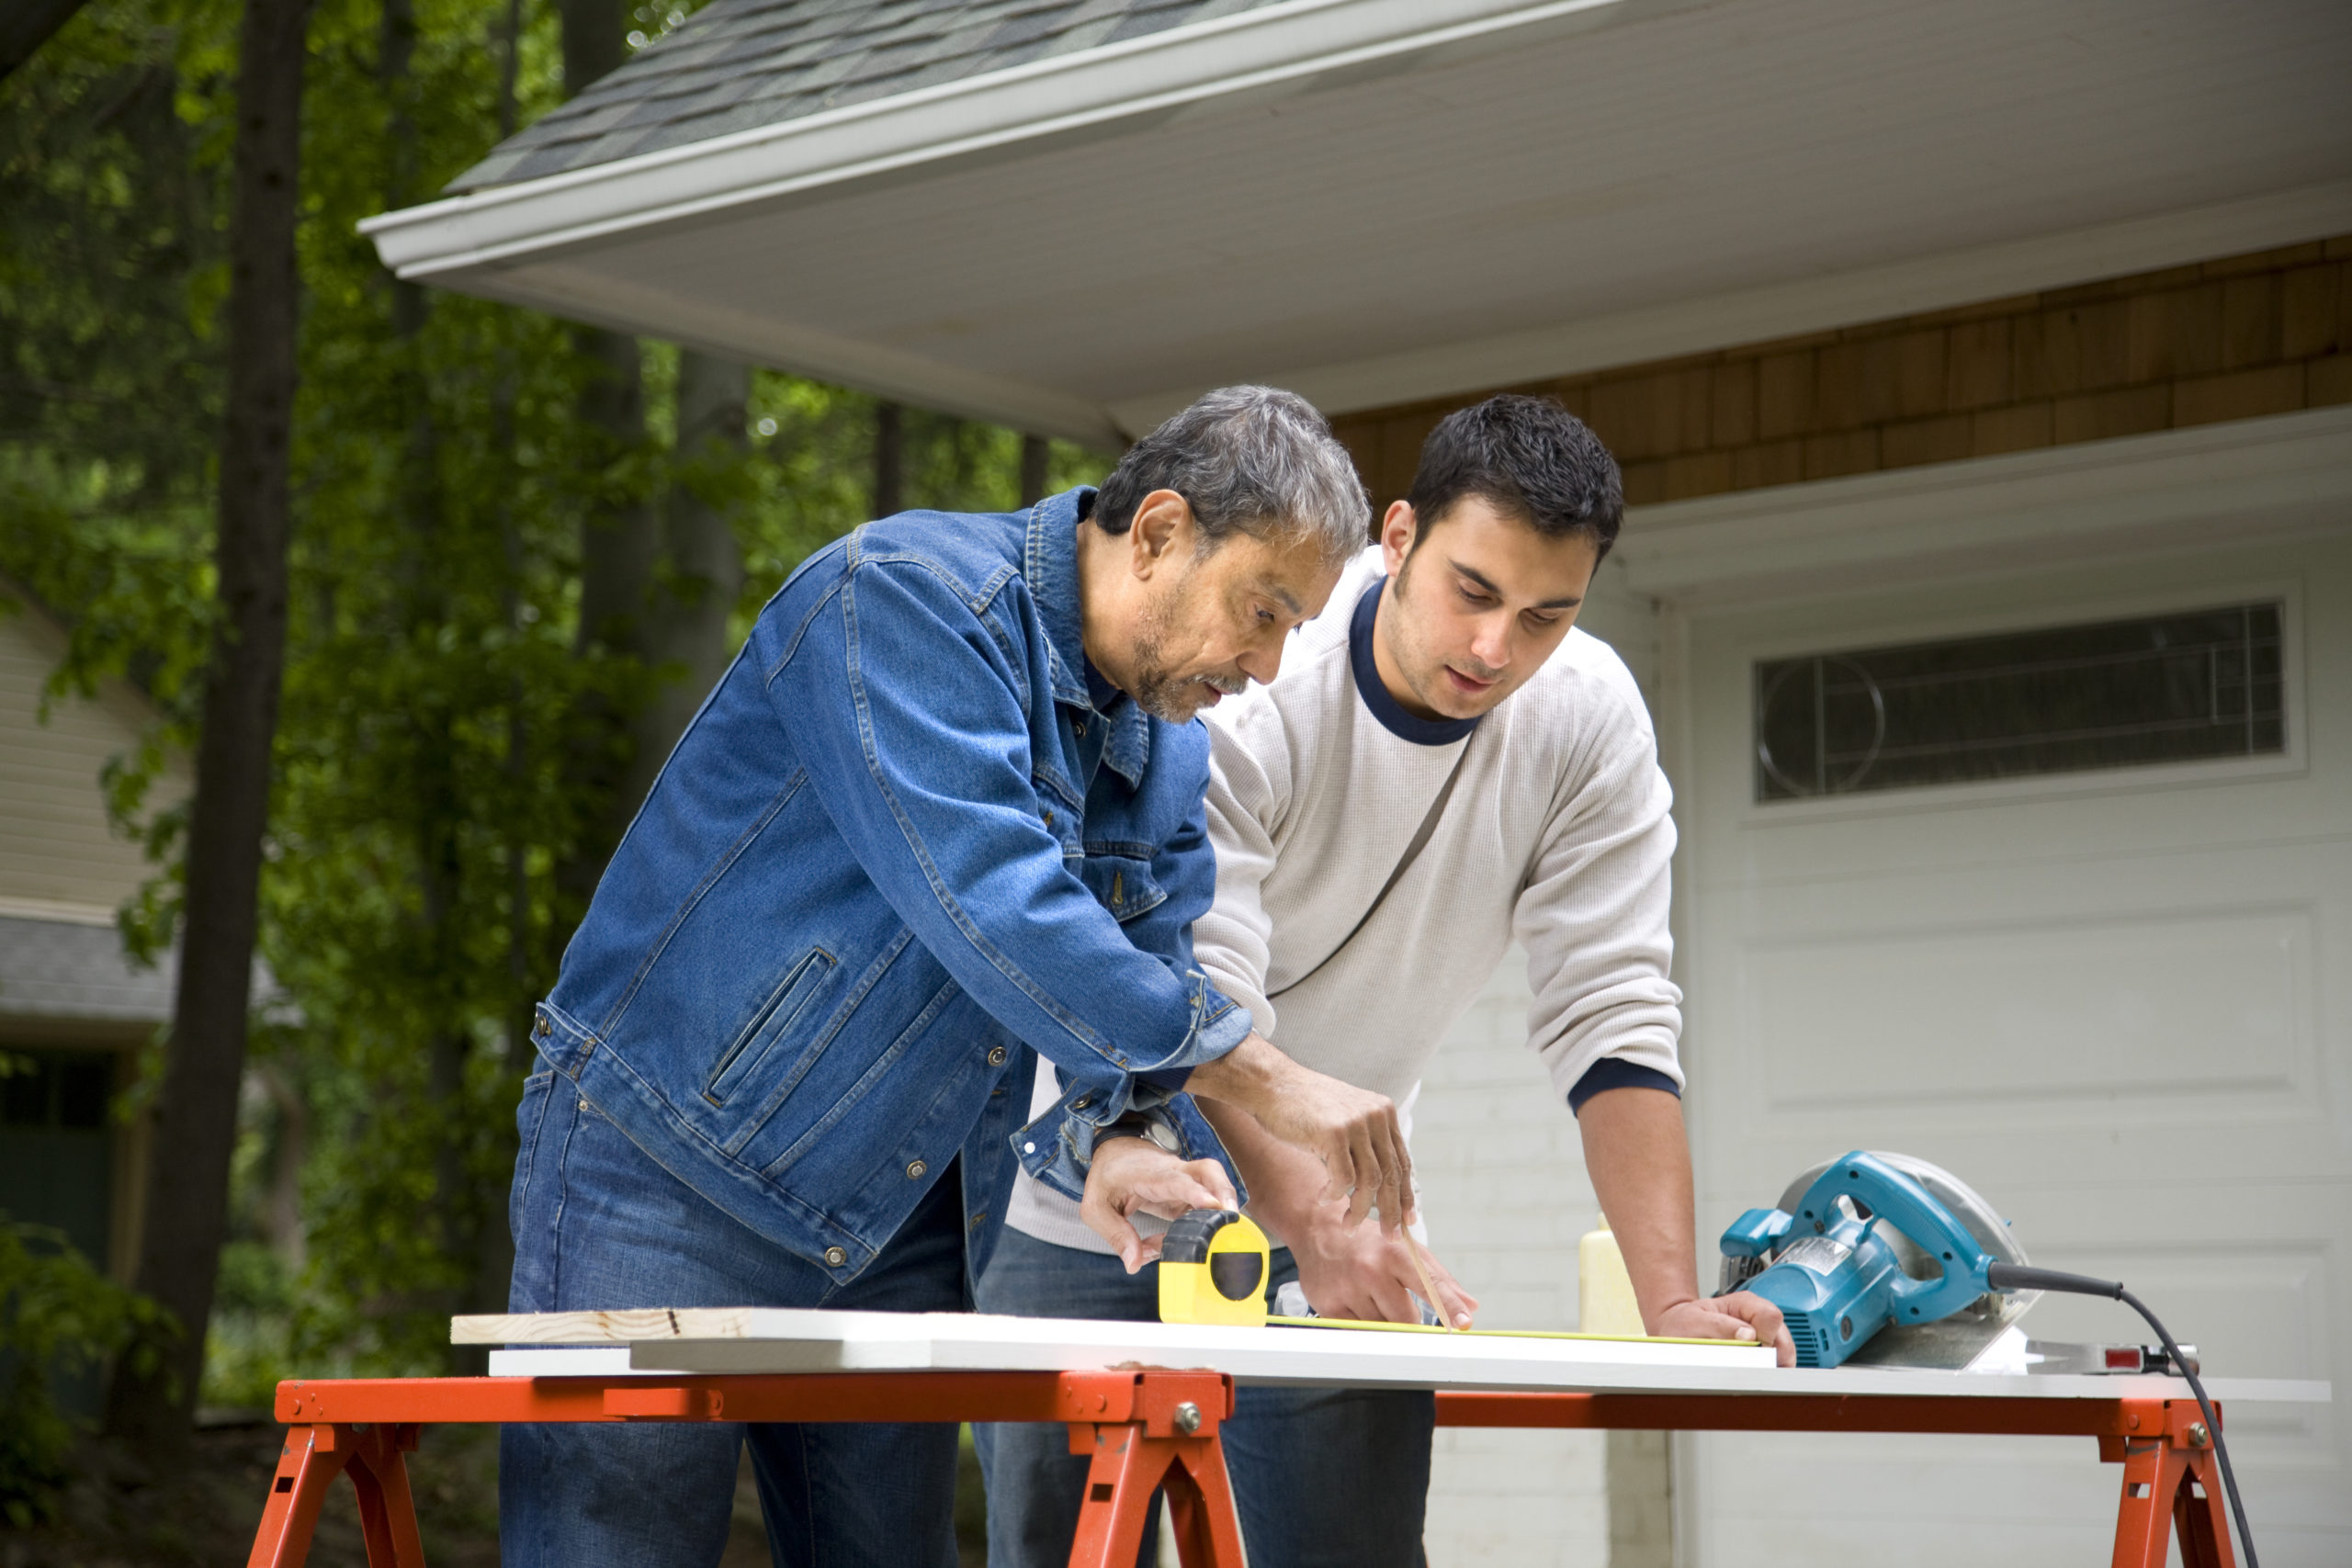 Father and adult son working on home project in driveway